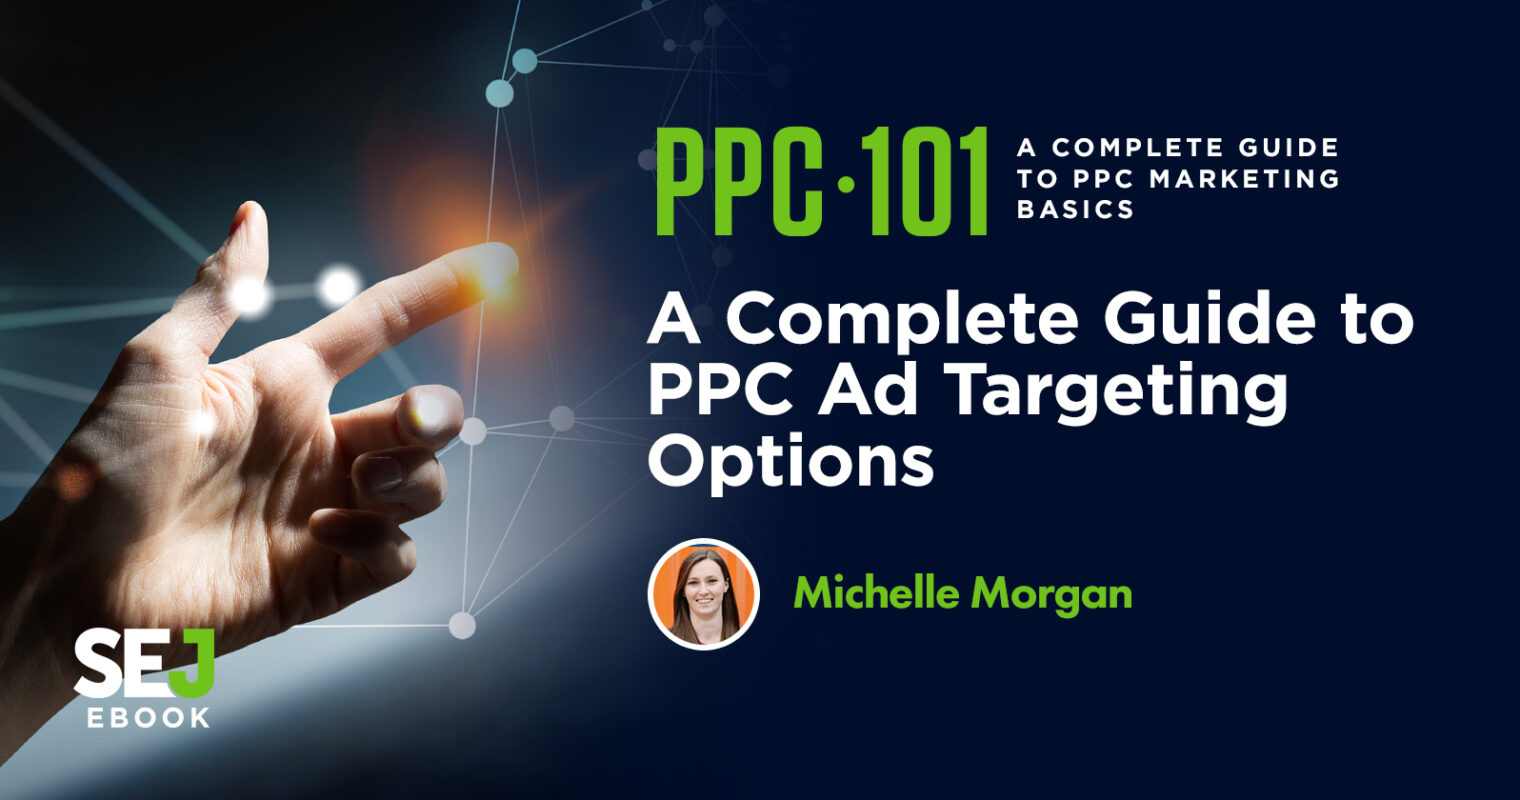 A Complete Guide to PPC Ad Targeting Options